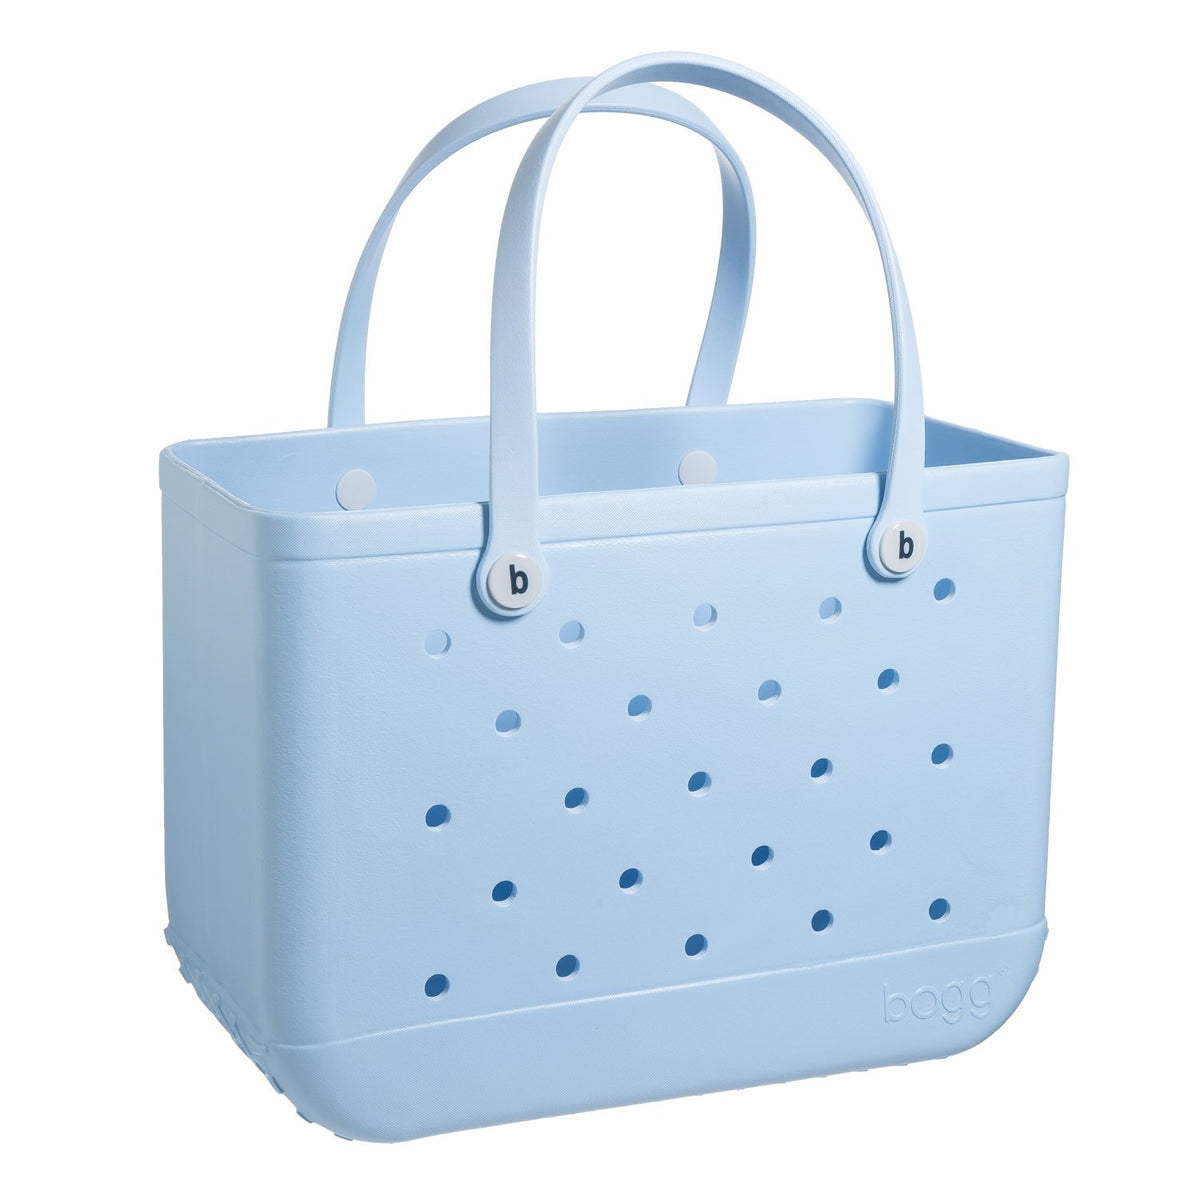 Original Bogg Bag in Carolina Blue